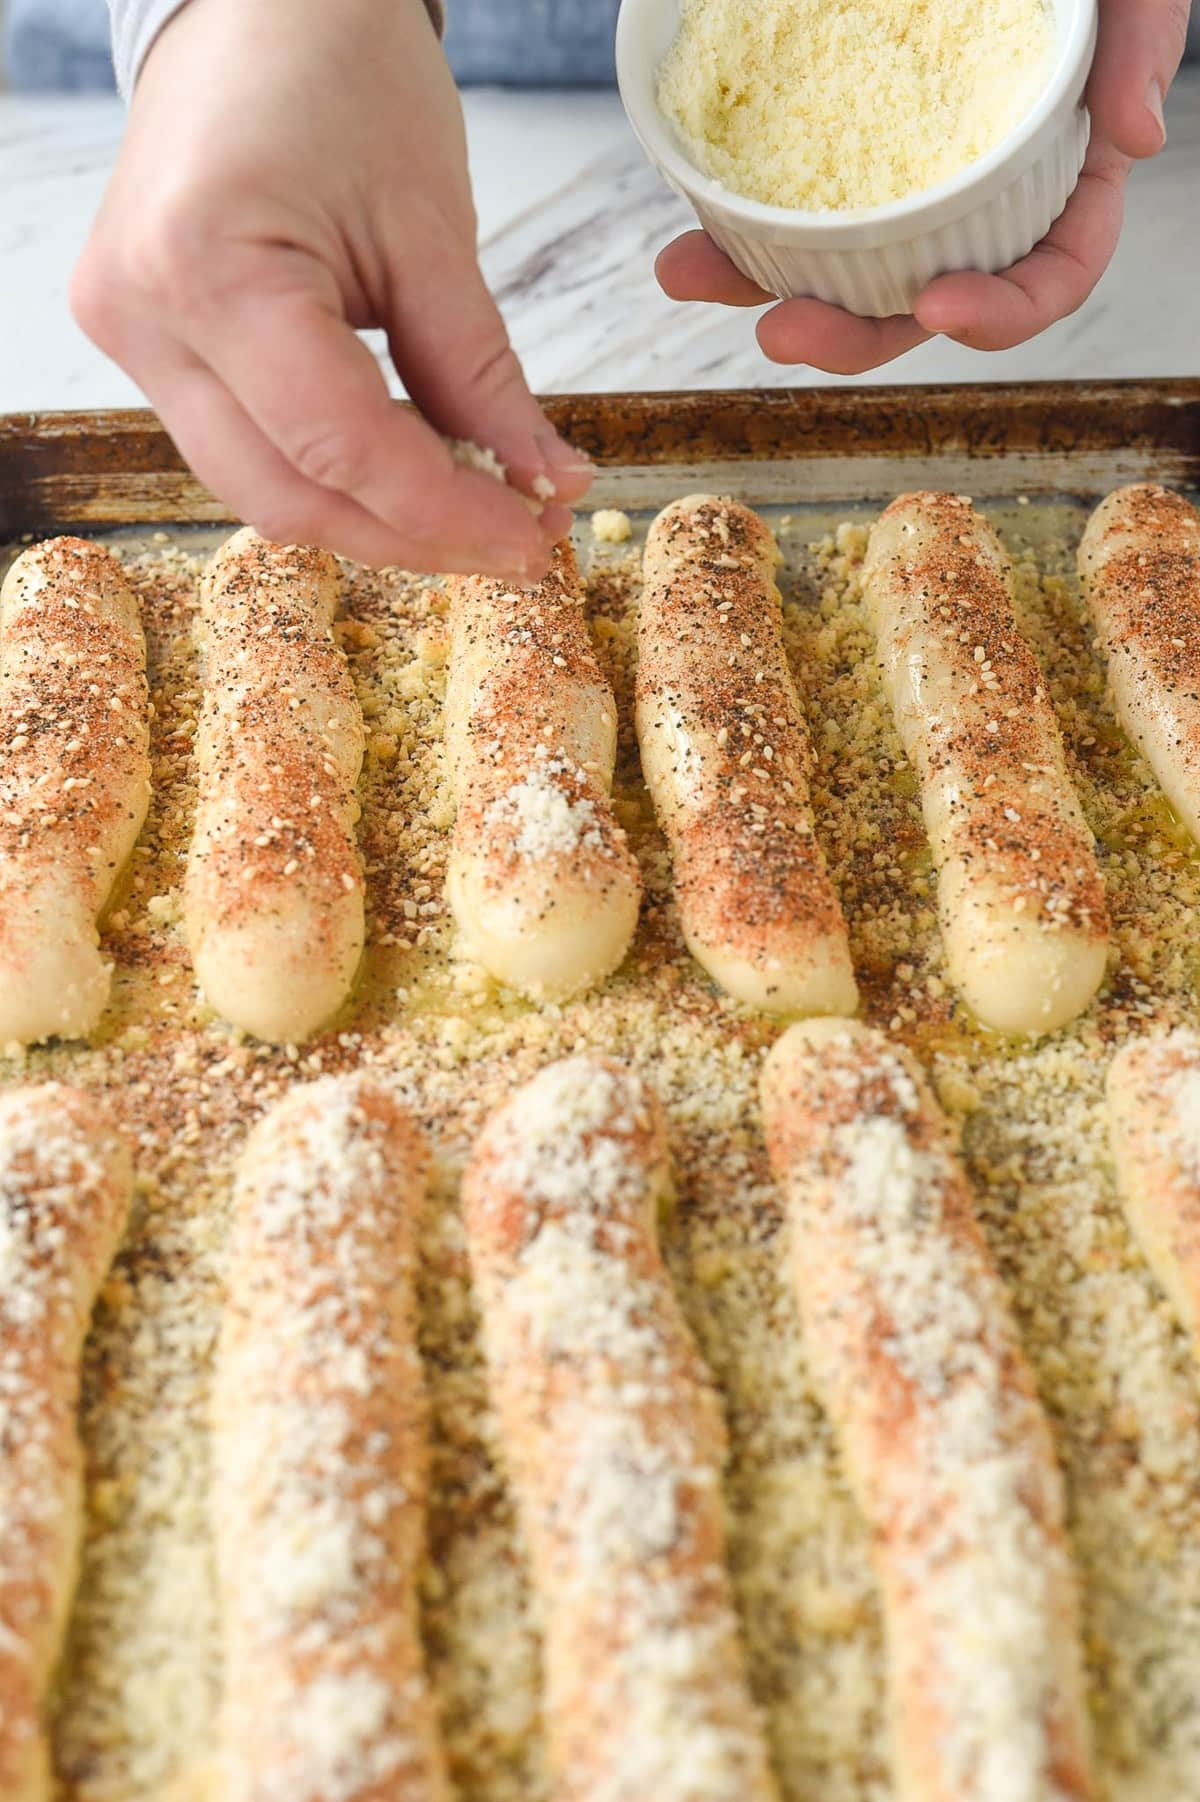 sprinkling cheese on breadsticks